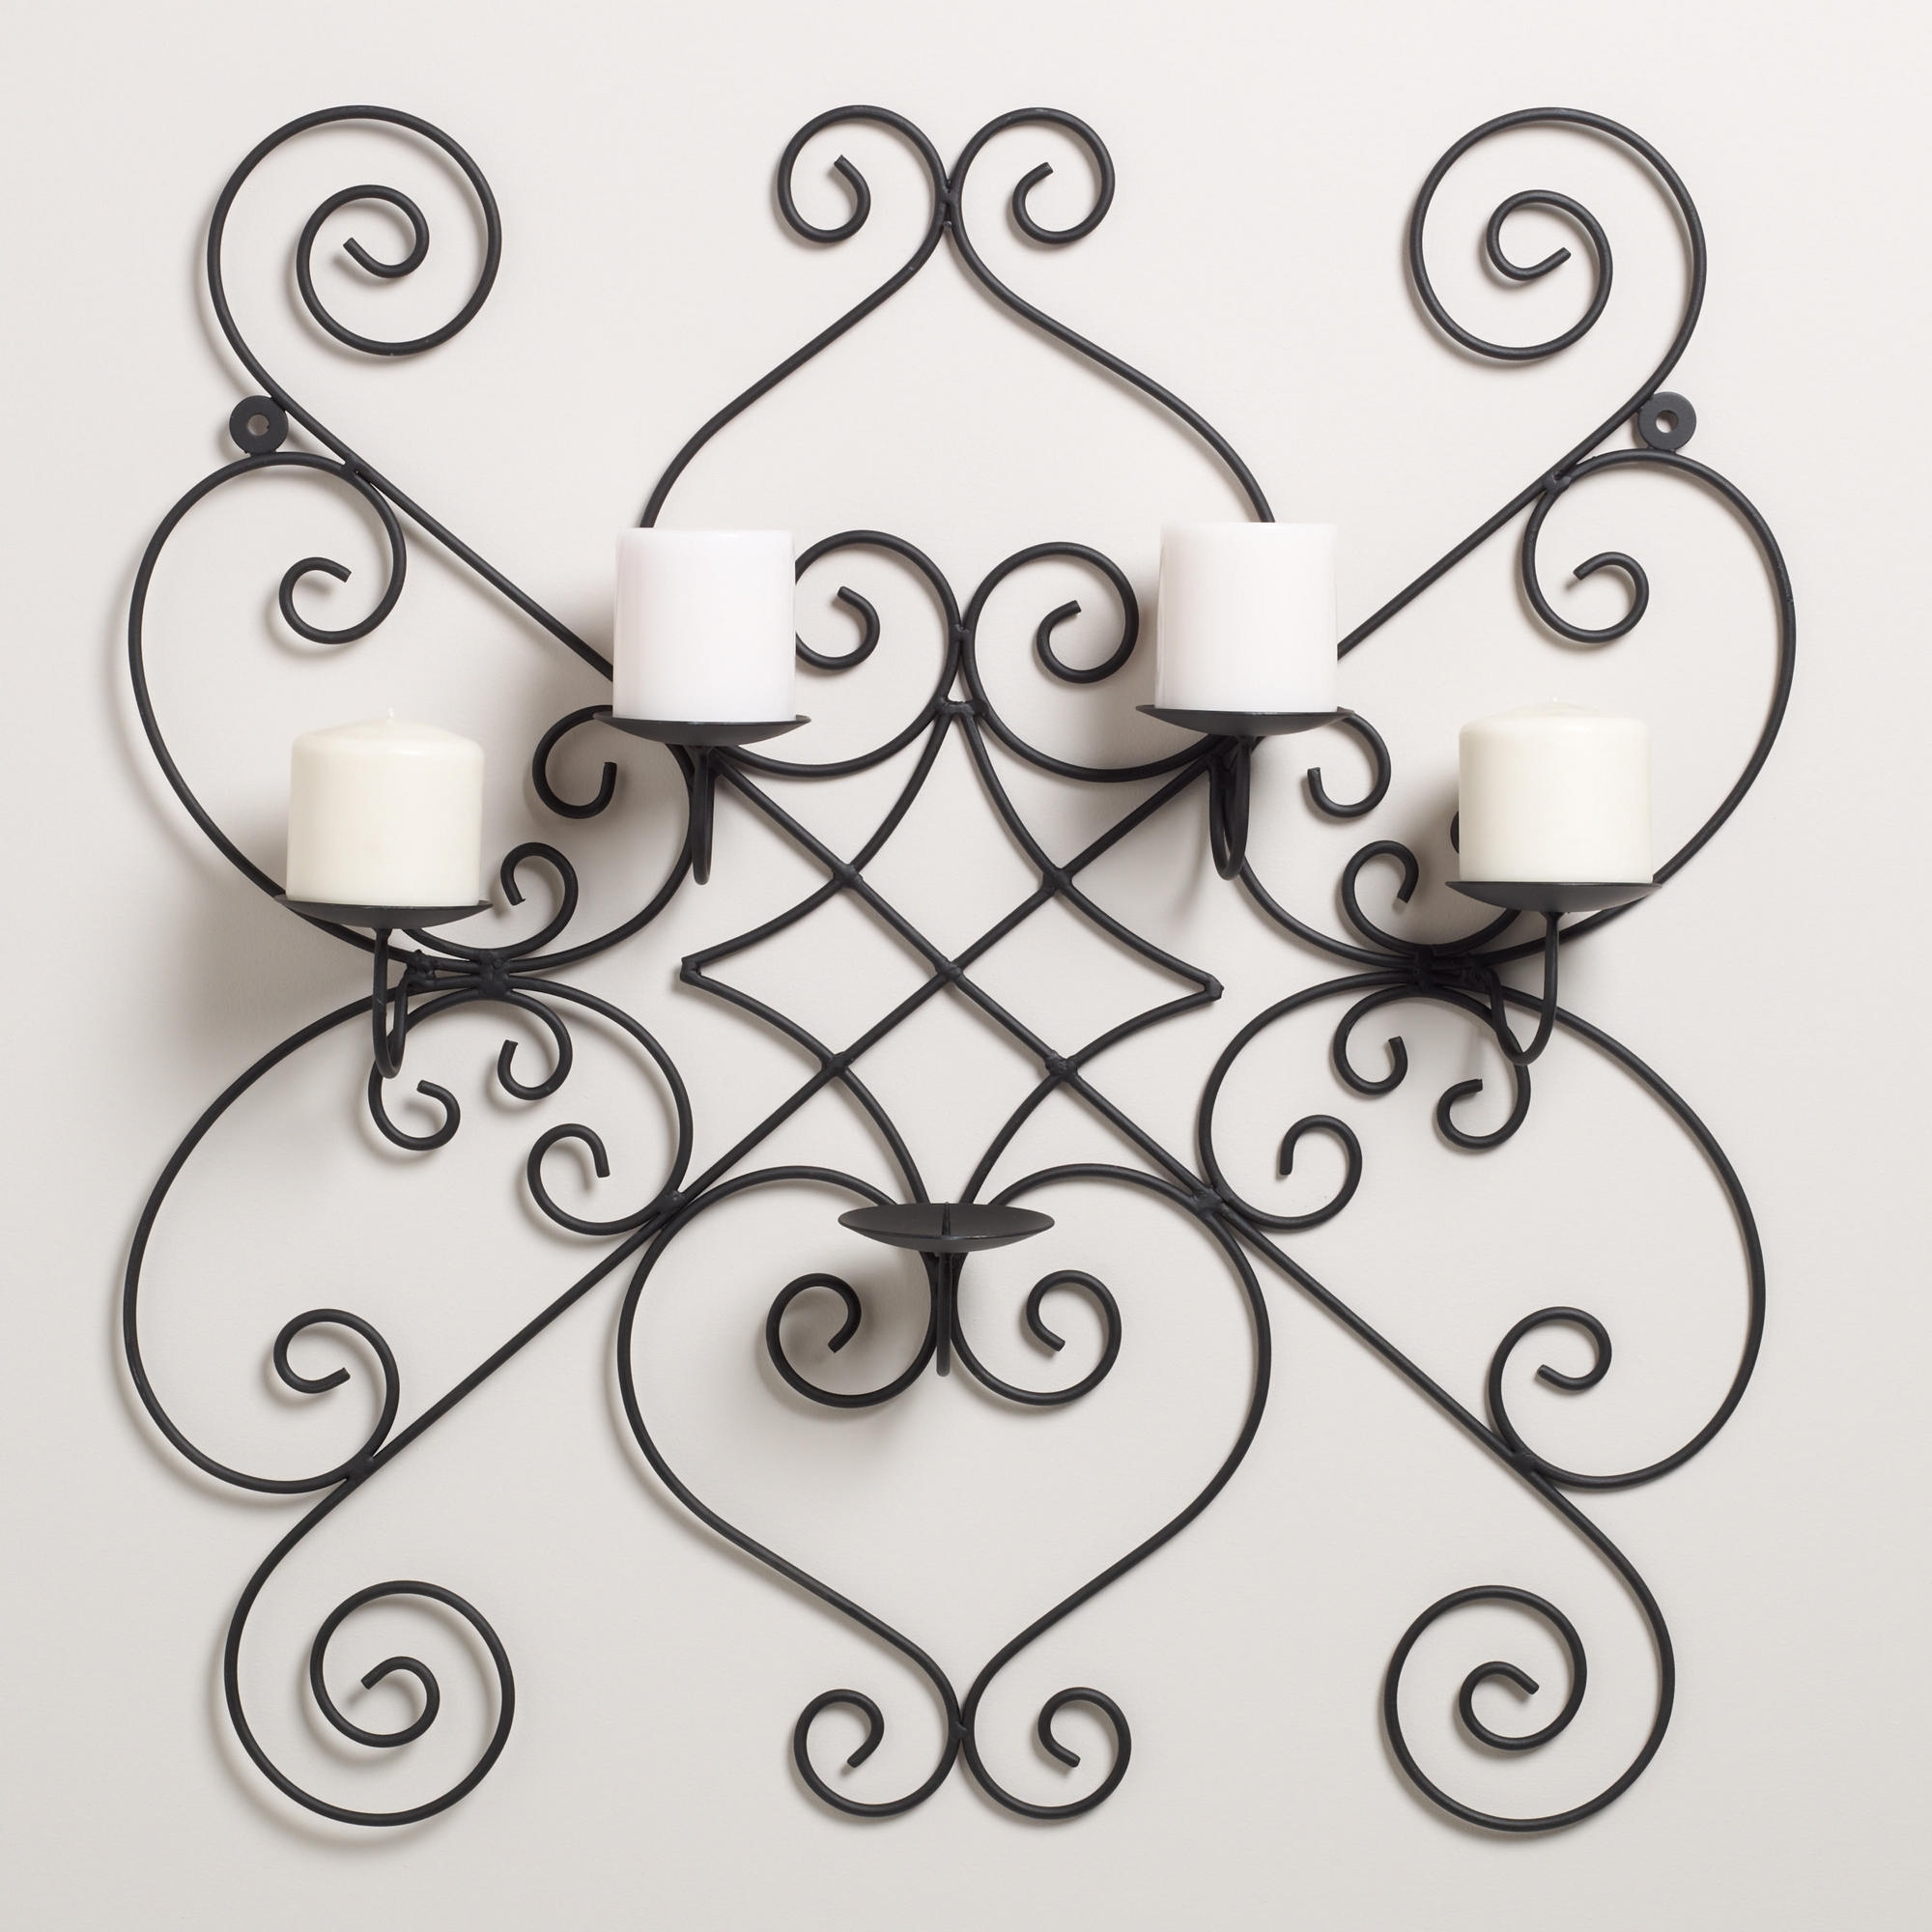 Benefit Of Wrought Iron Wall Decor — Charter Home Ideas Within Current Wrought Iron Wall Art (View 2 of 15)